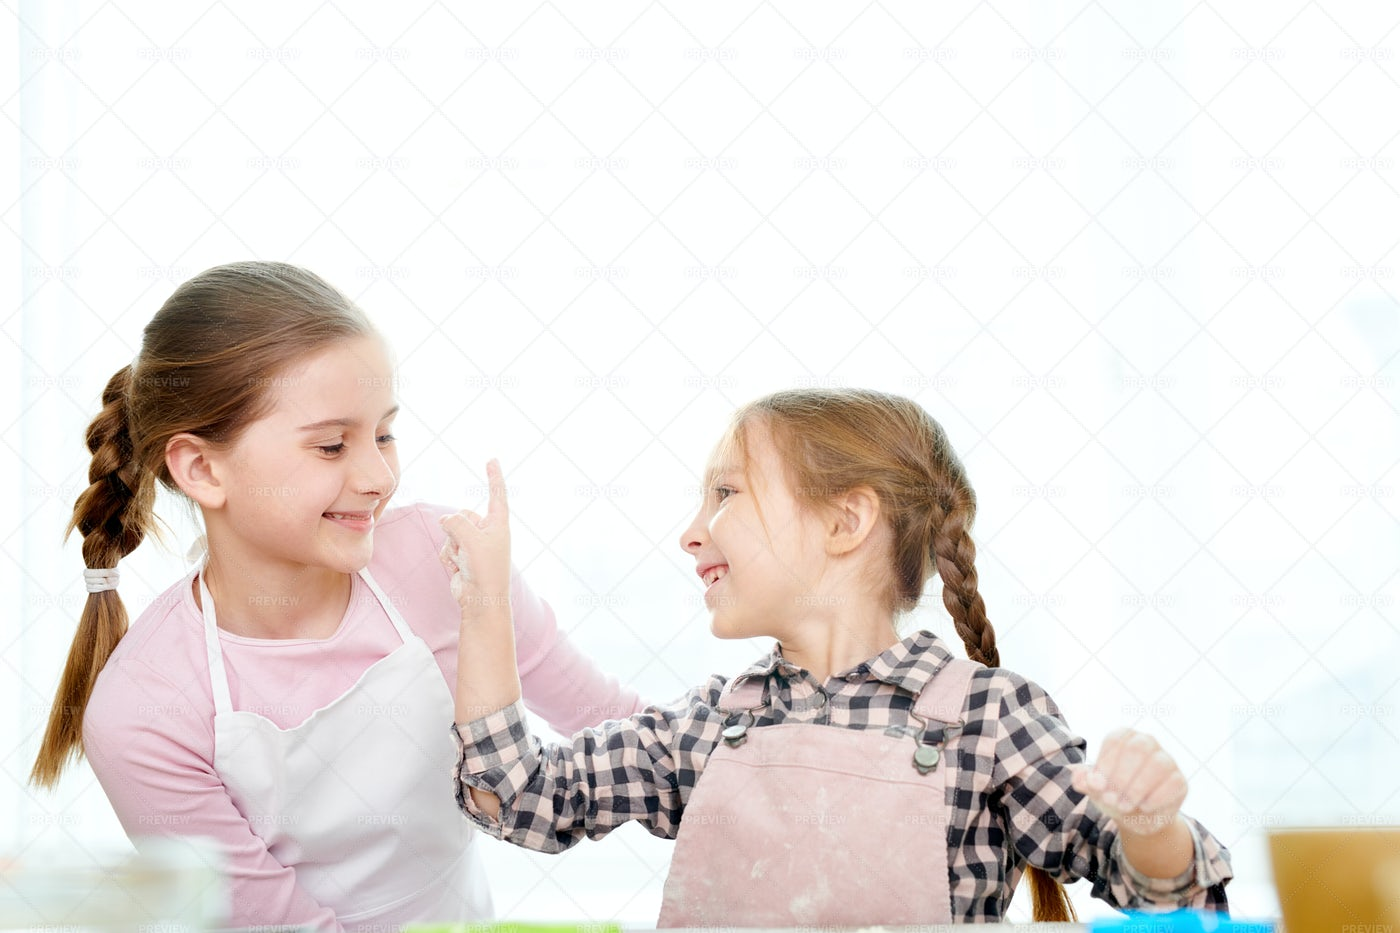 Adorable Sisters Cooking Together: Stock Photos